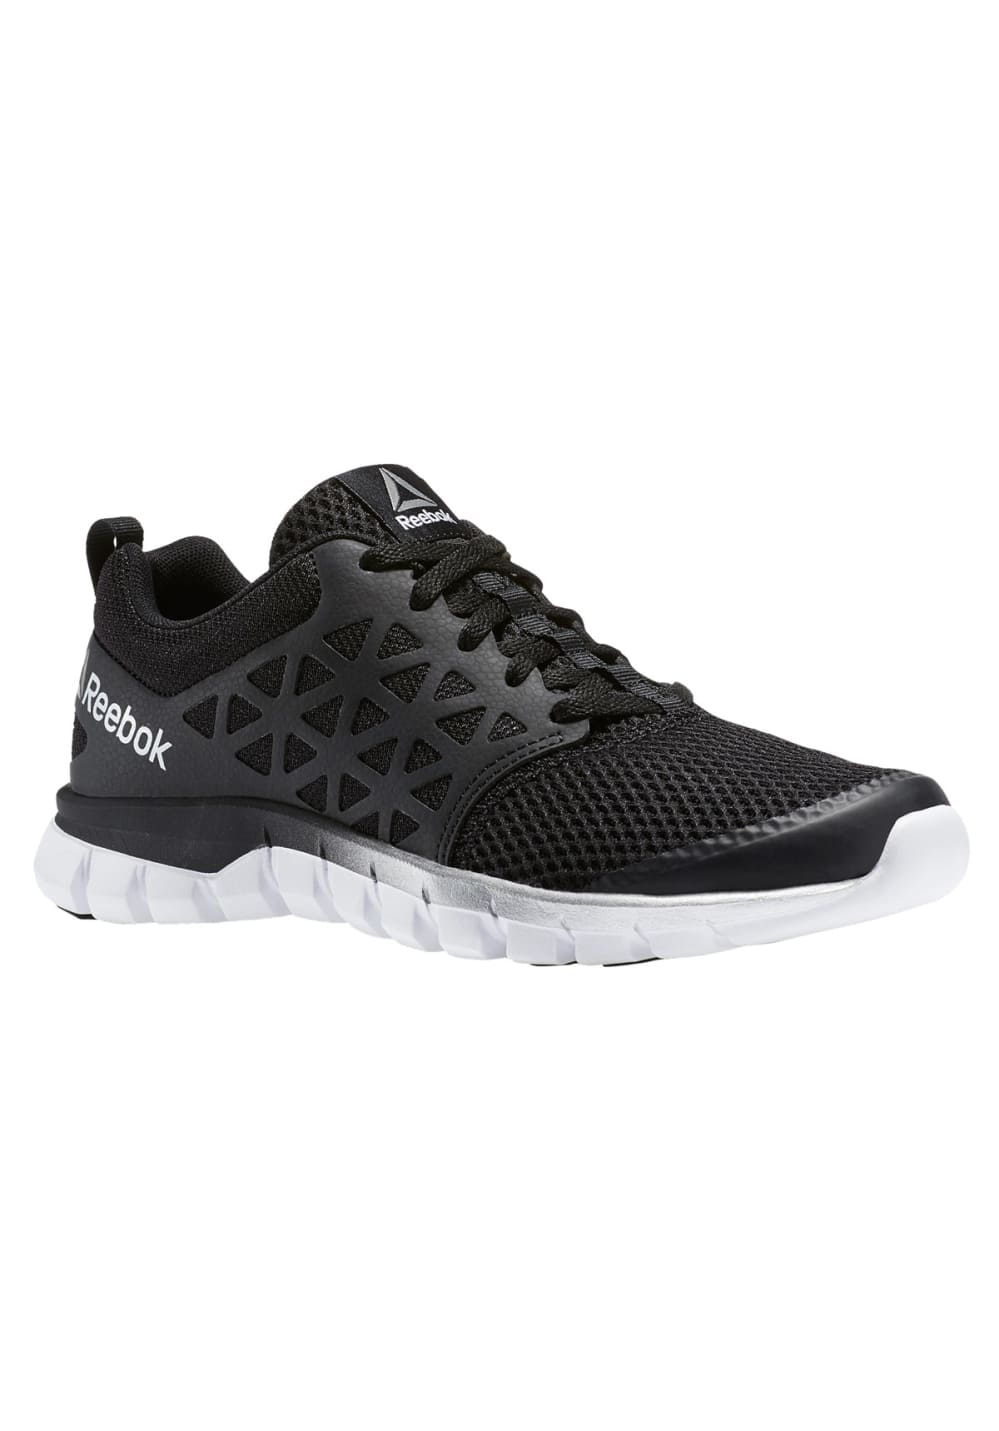 ccd4a9c0a3b Next. -50%. This product is currently out of stock. Reebok. Sublite Xt  Cushion 2.0 Mt - Running shoes for Women